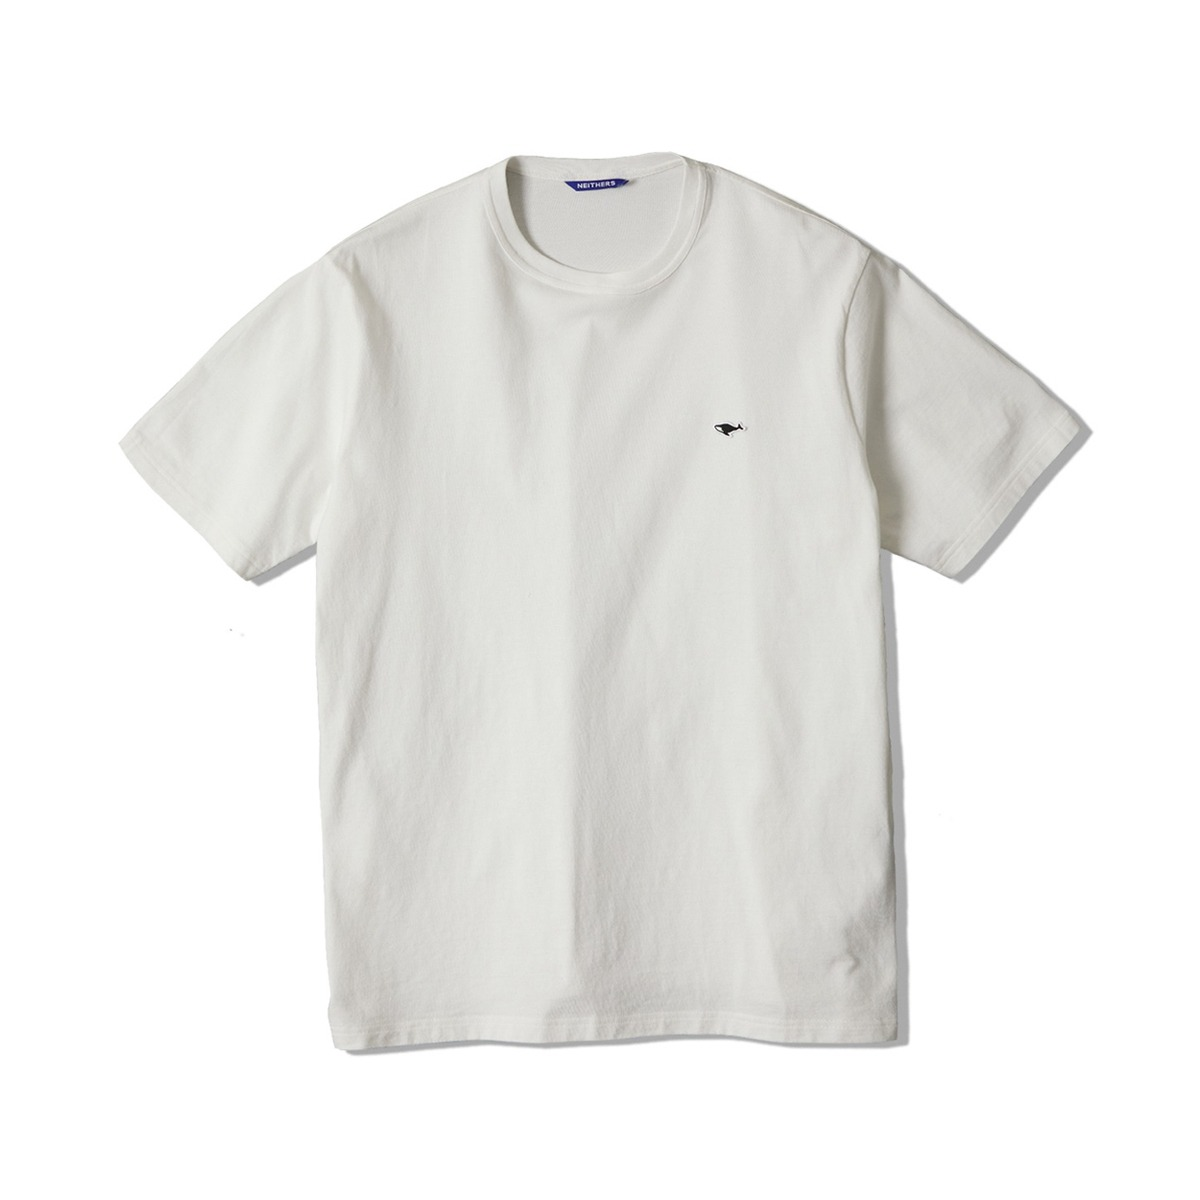 [NEITHERS] S S/S T-SHIRT 'OFF WHITE'